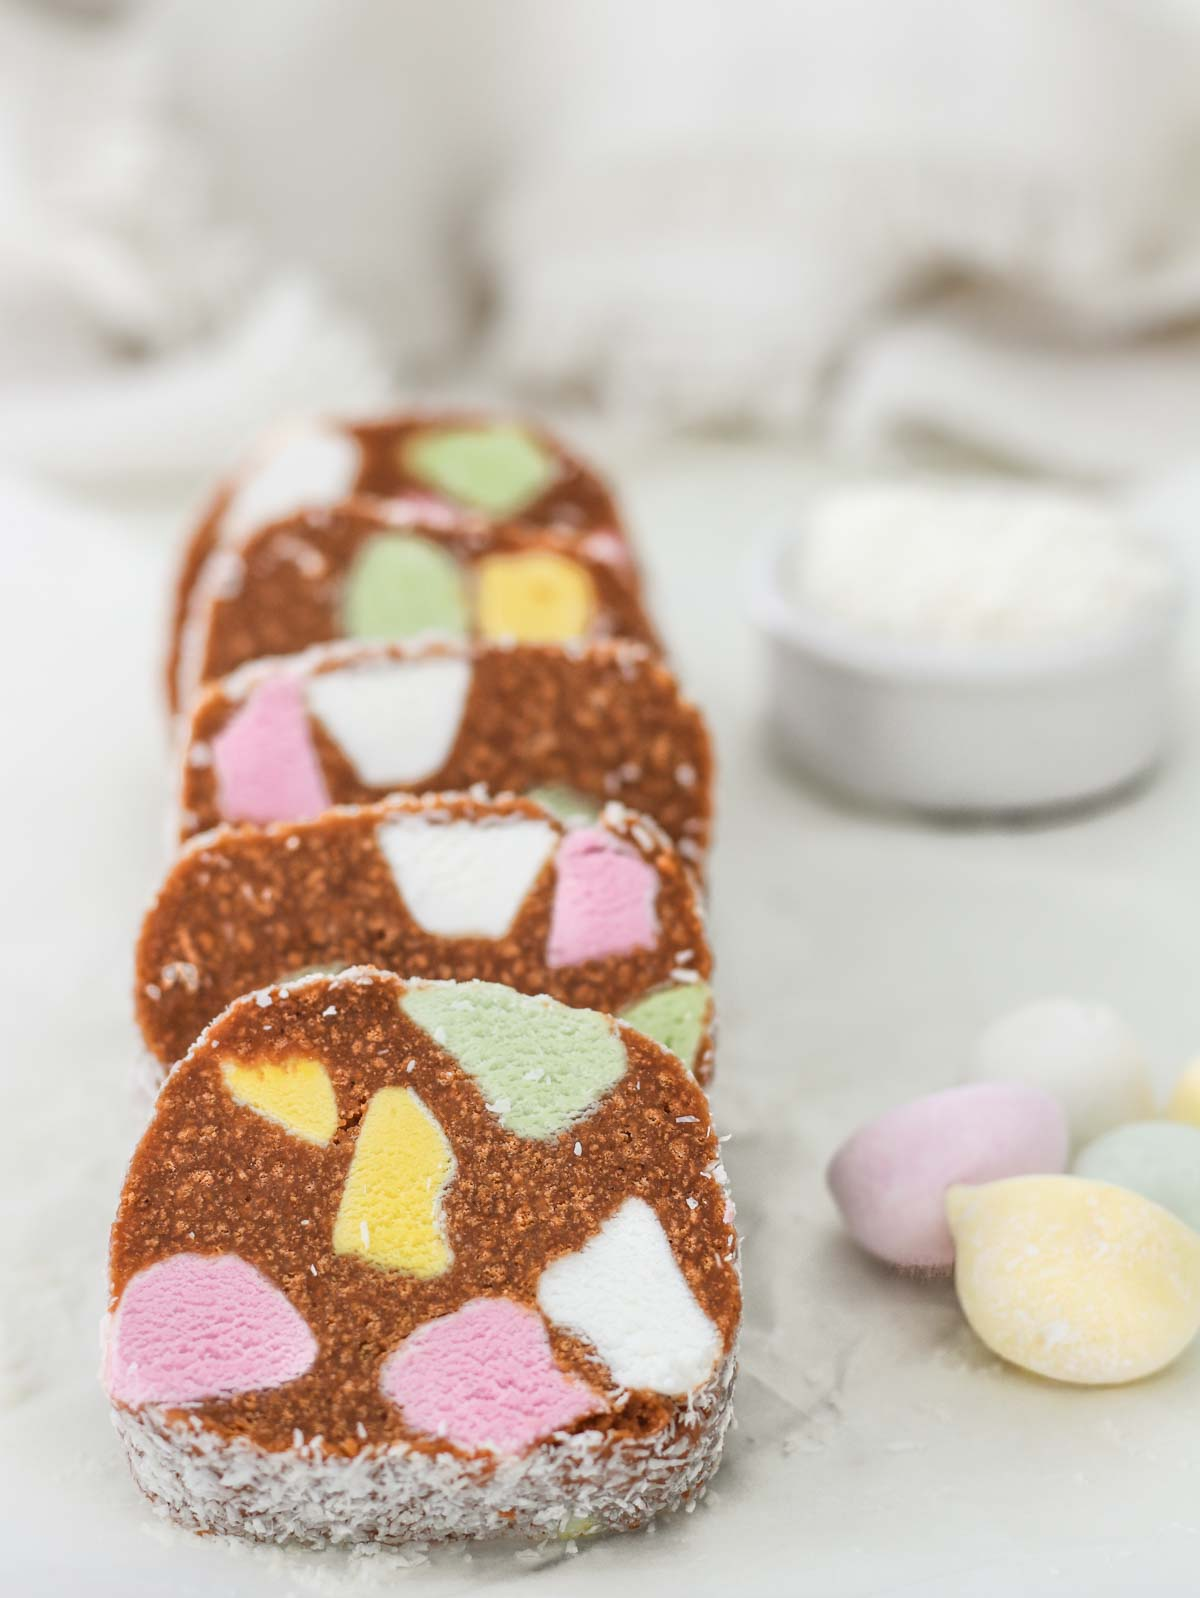 How to Make Lolly Cake